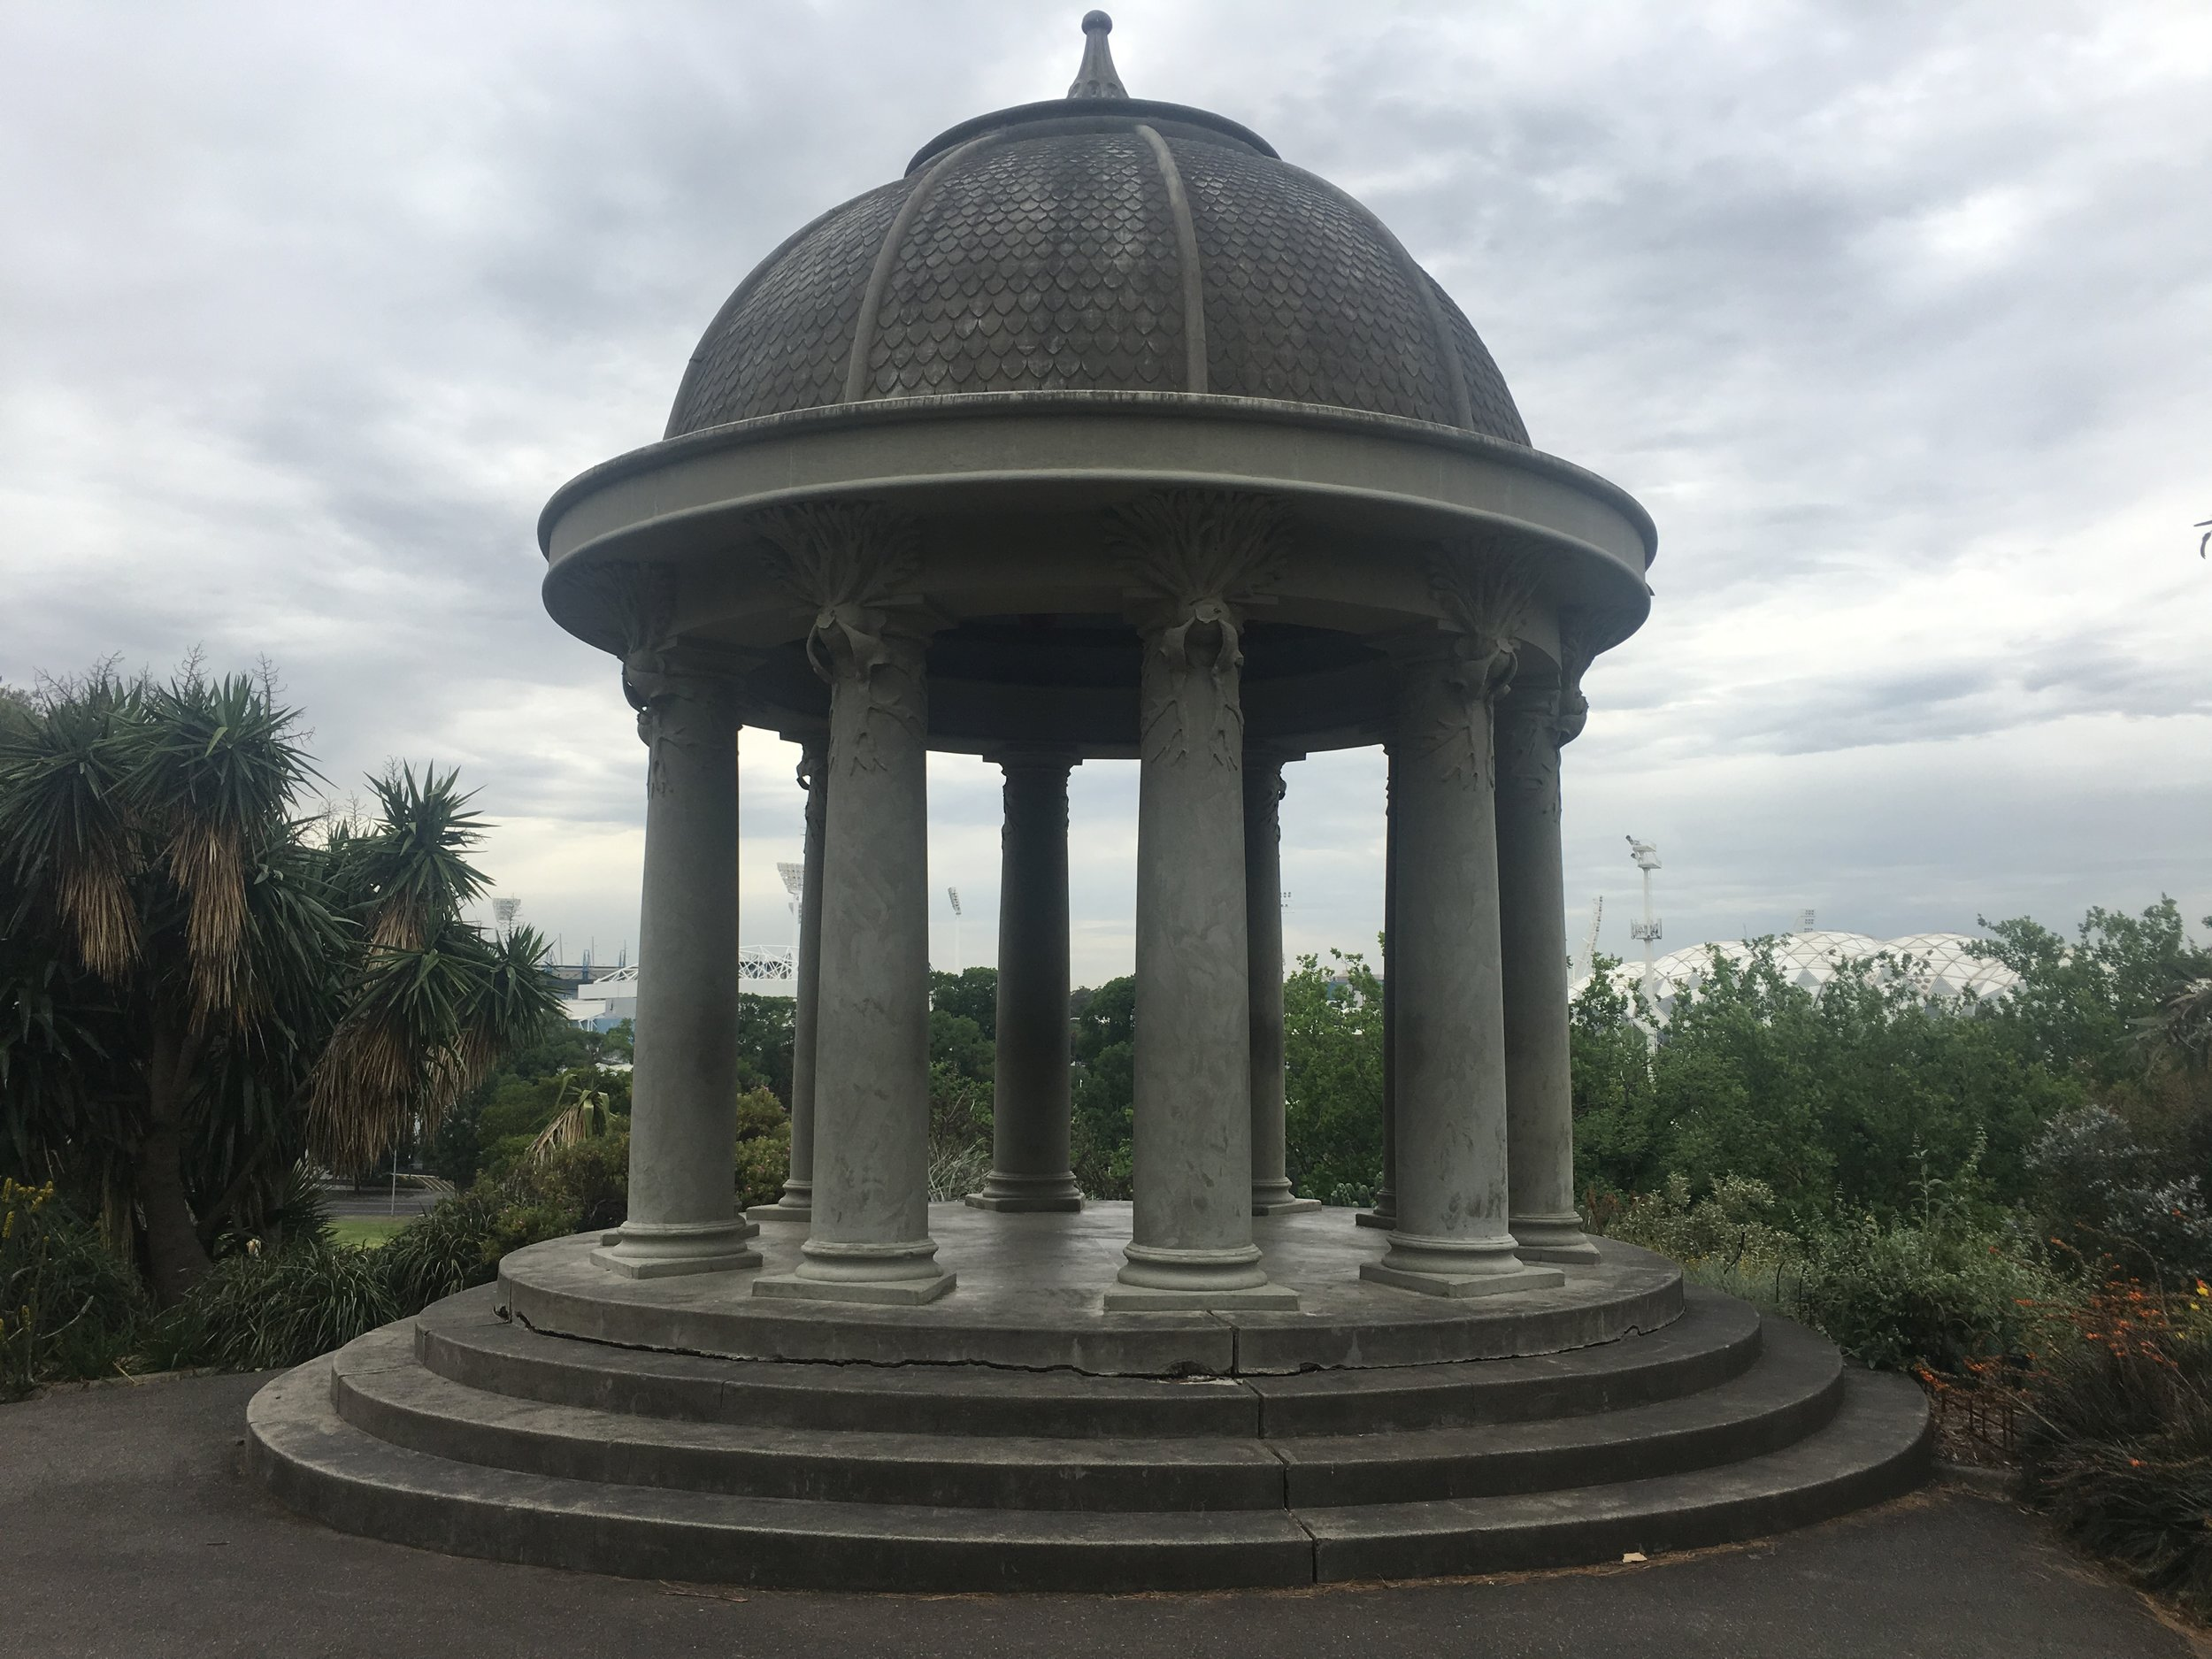 The Temple of the Winds.